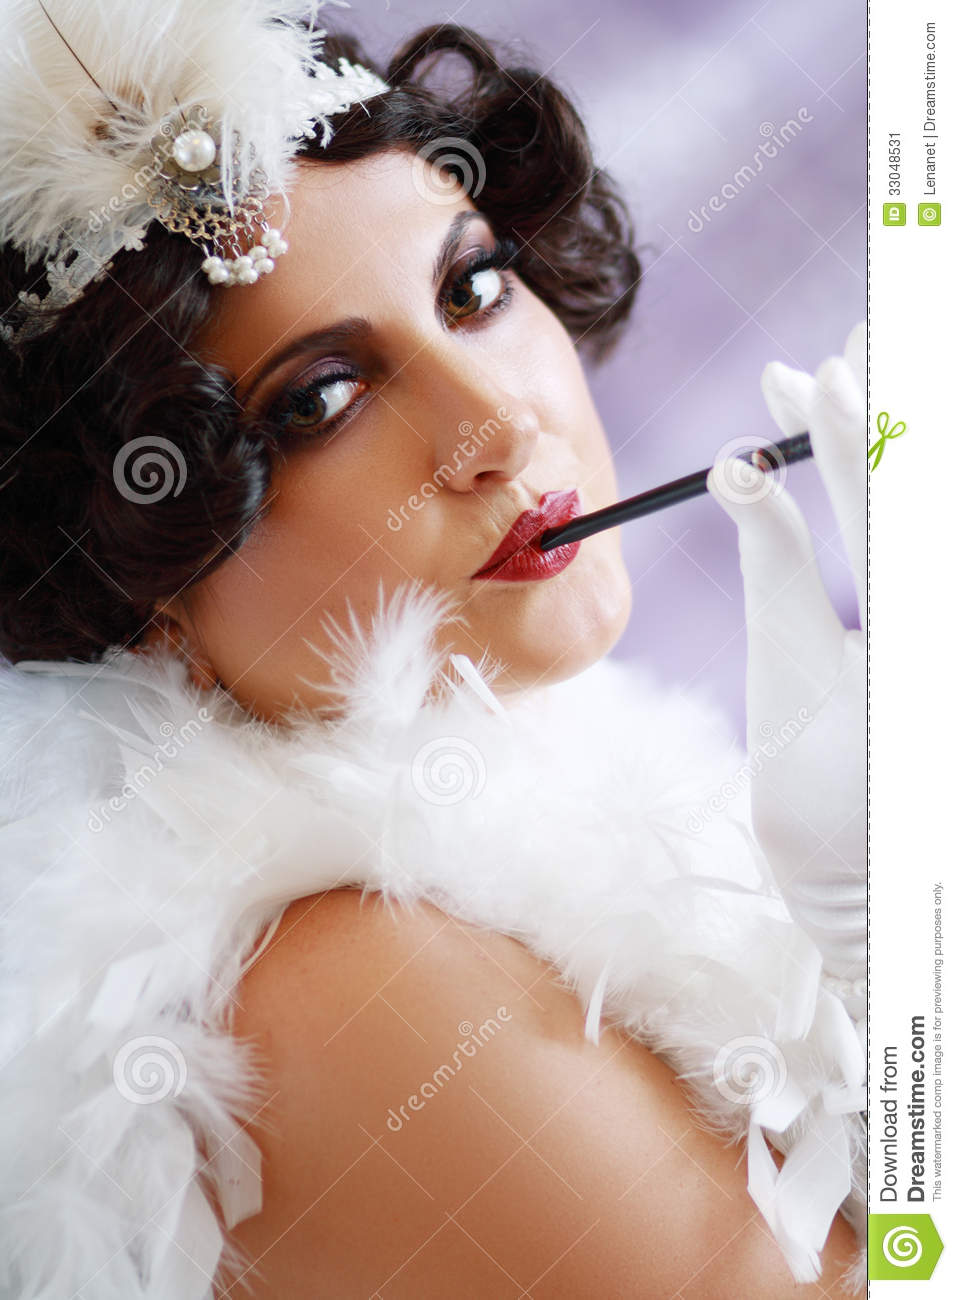 lady from roaring 20s stock image image 33048531